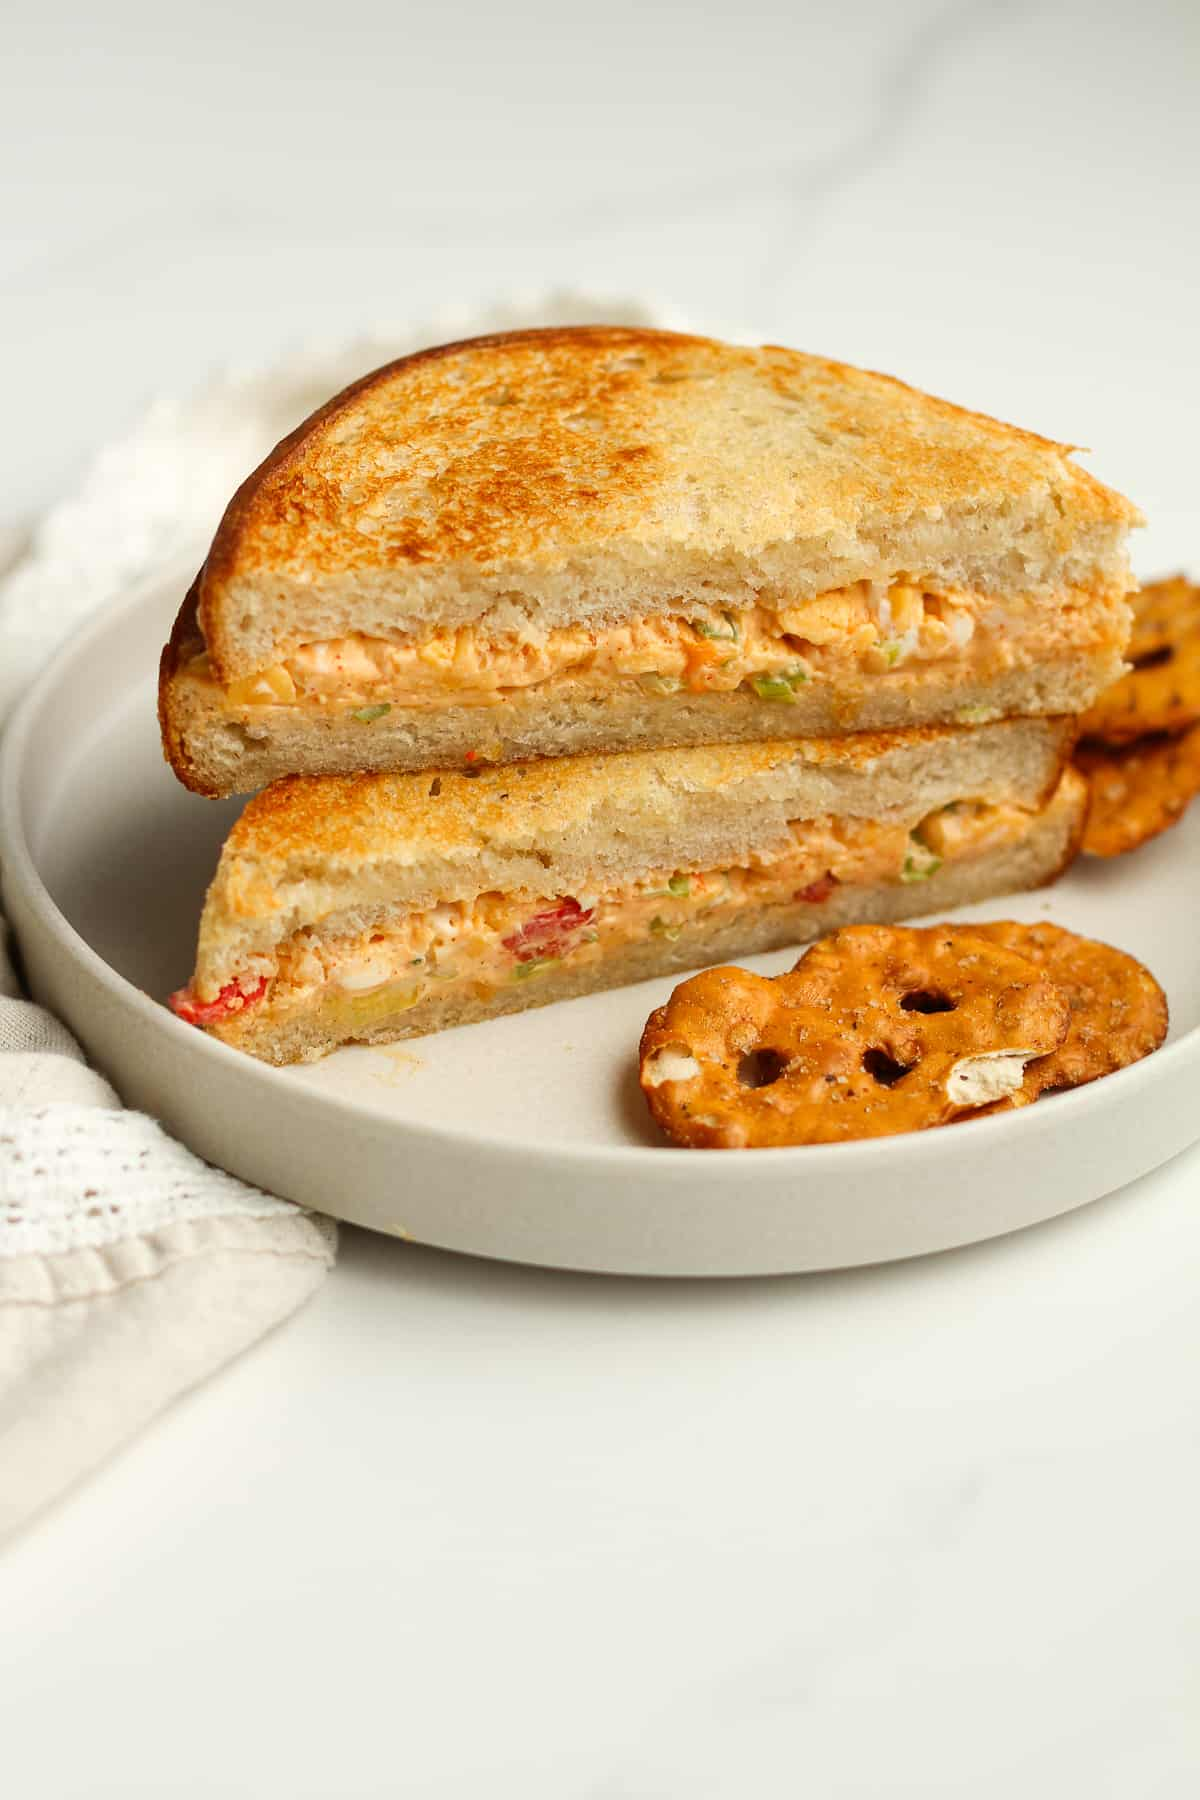 A grilled cheese pimento sandwich.